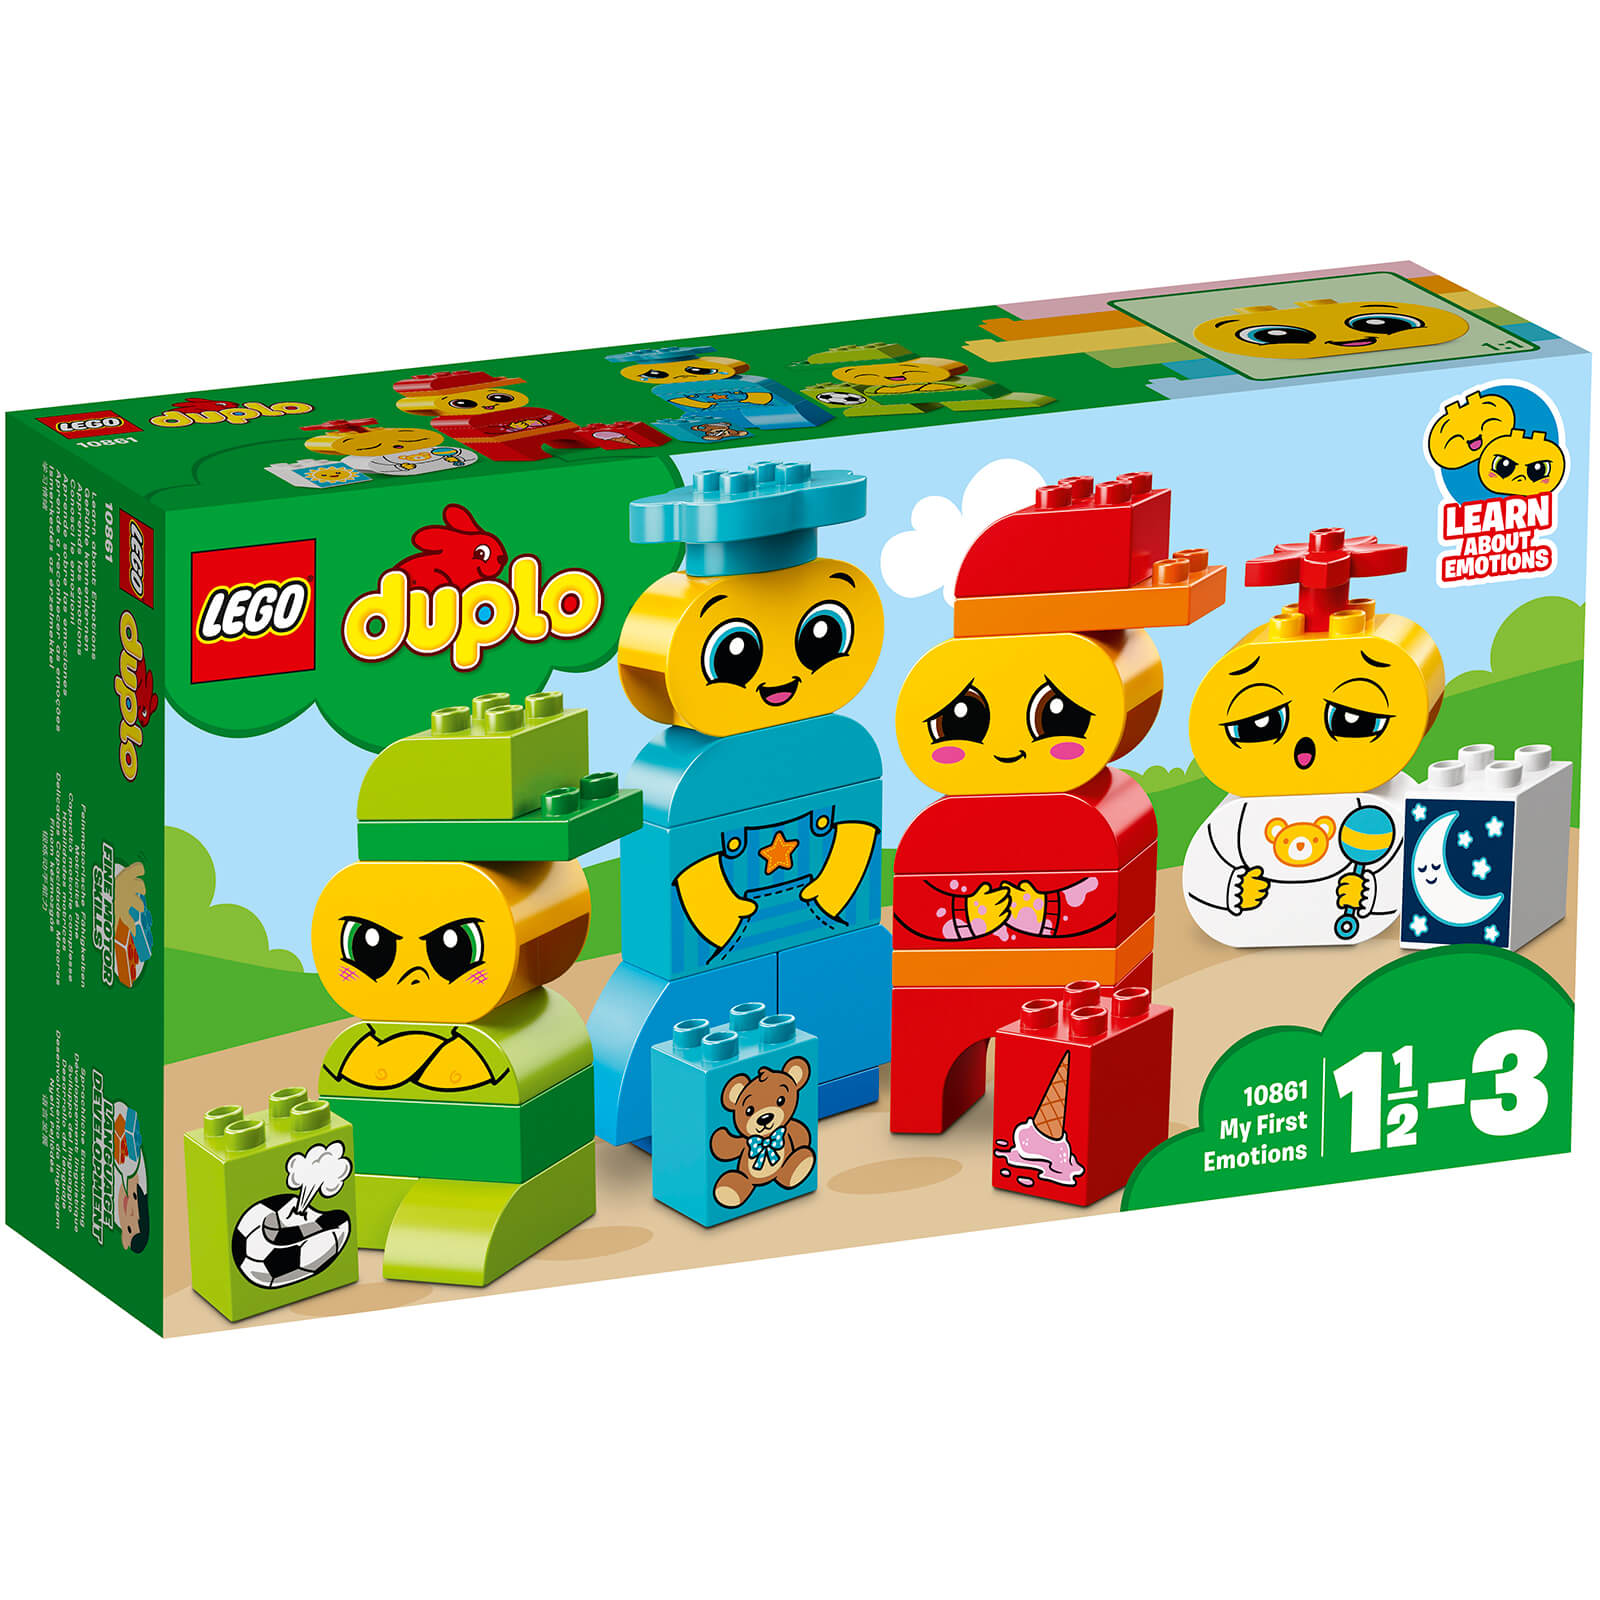 LEGO DUPLO: My First Emotions (10861)